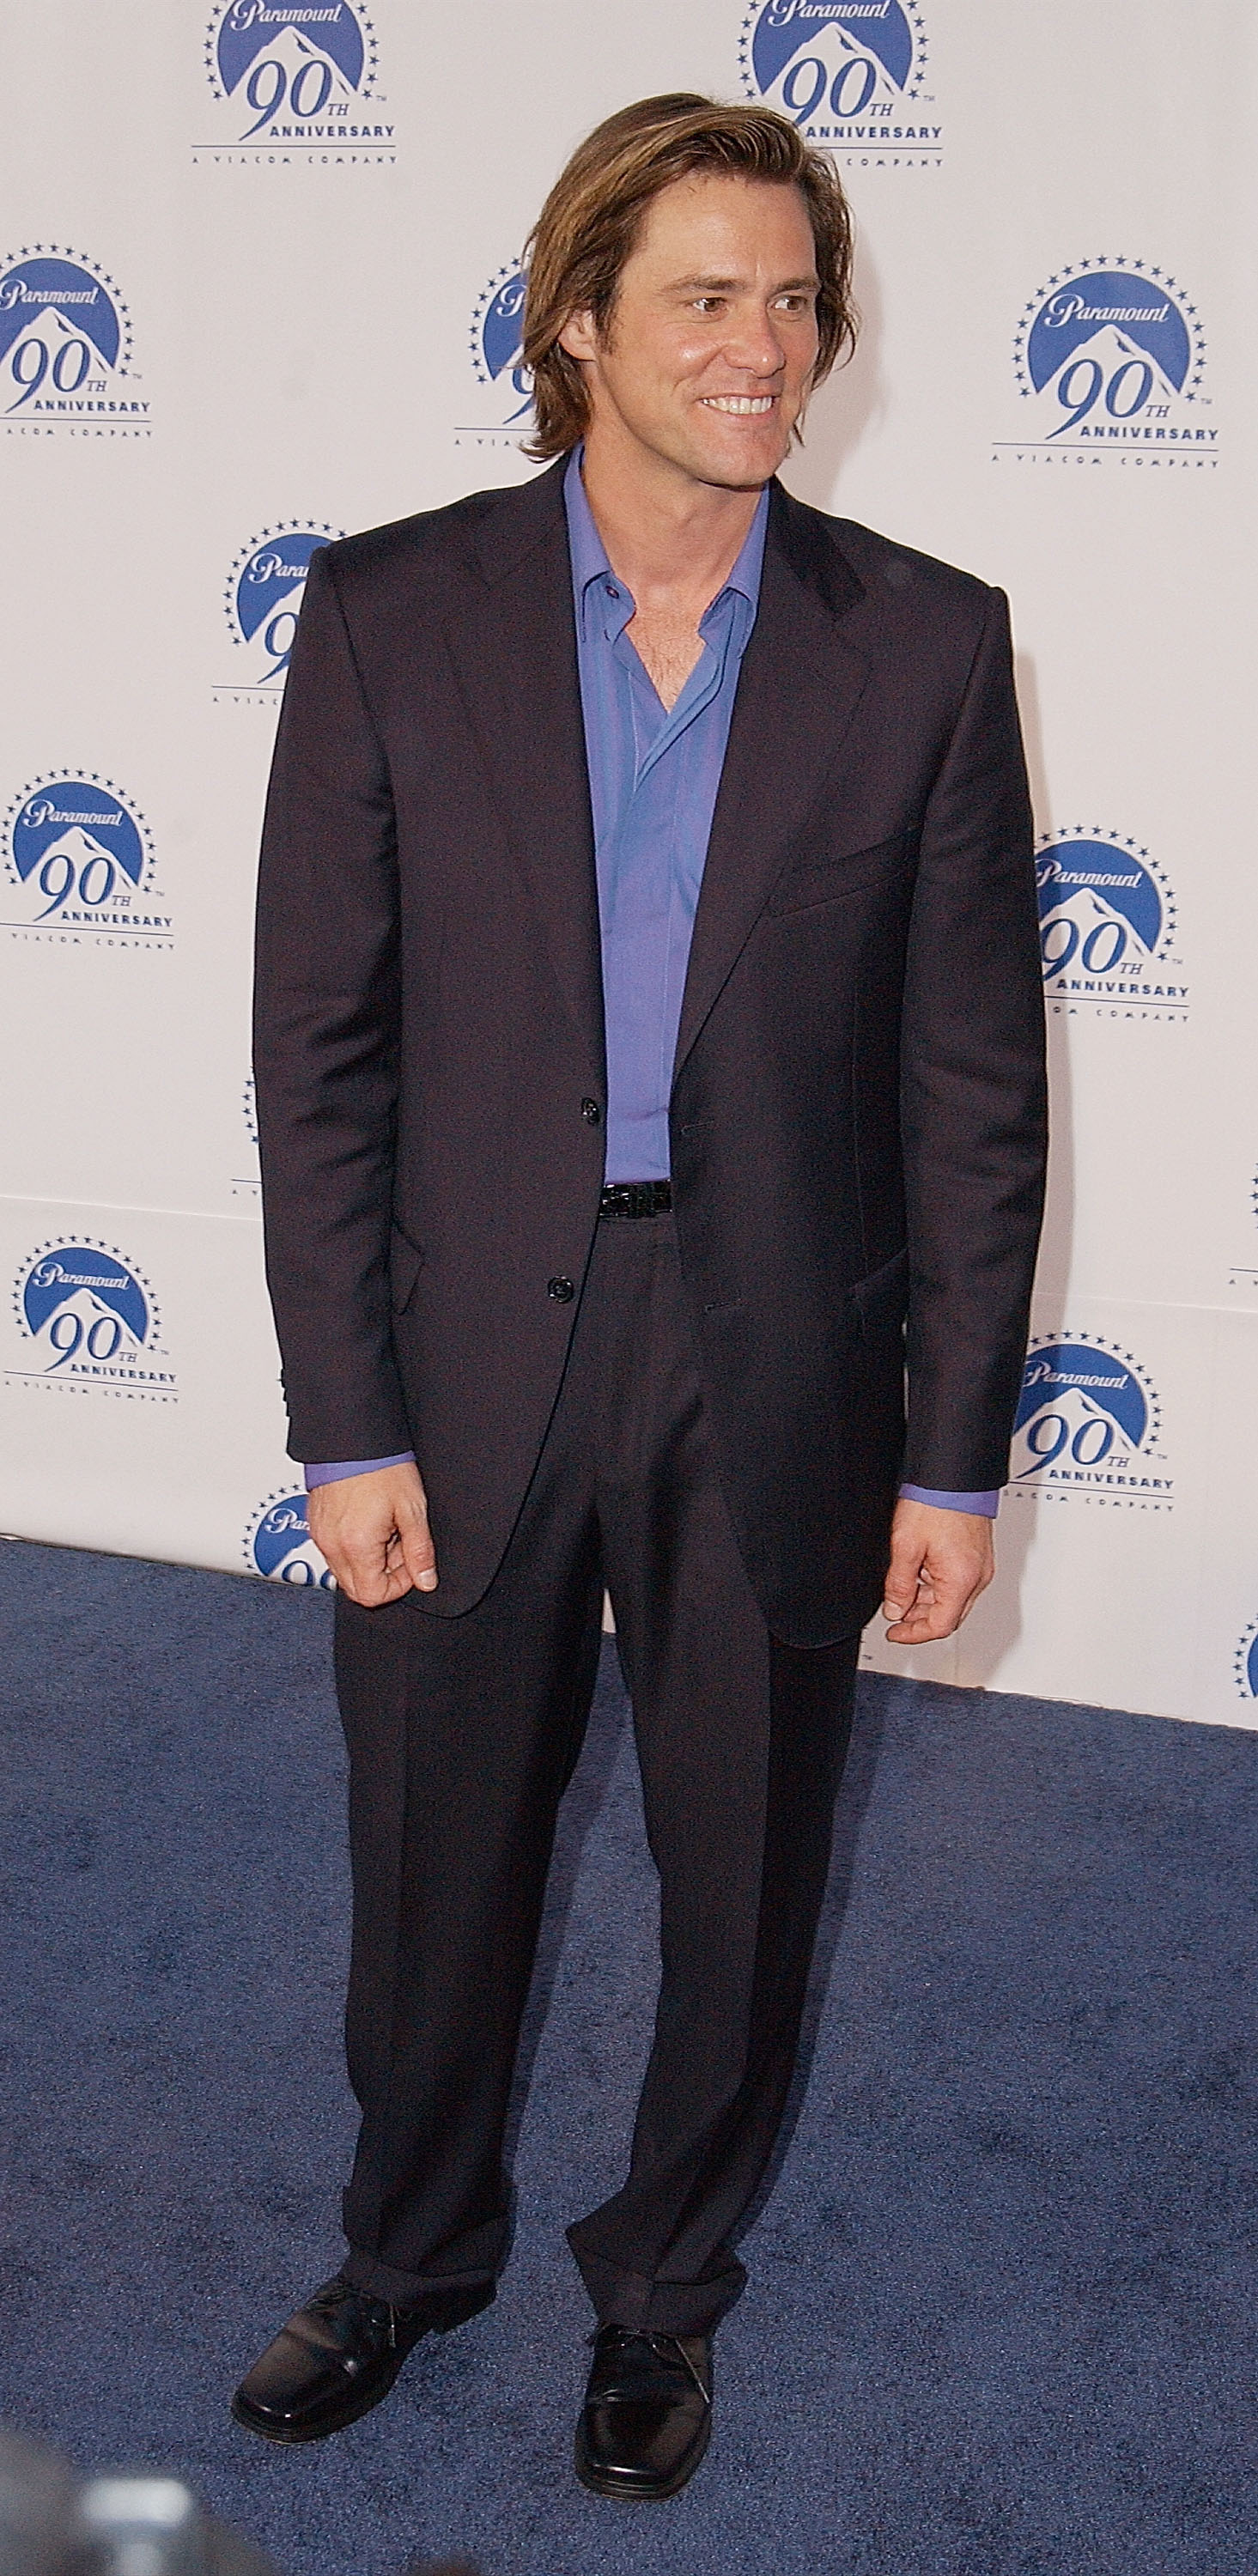 Image Source: Getty Images | Jim at a Paramount event